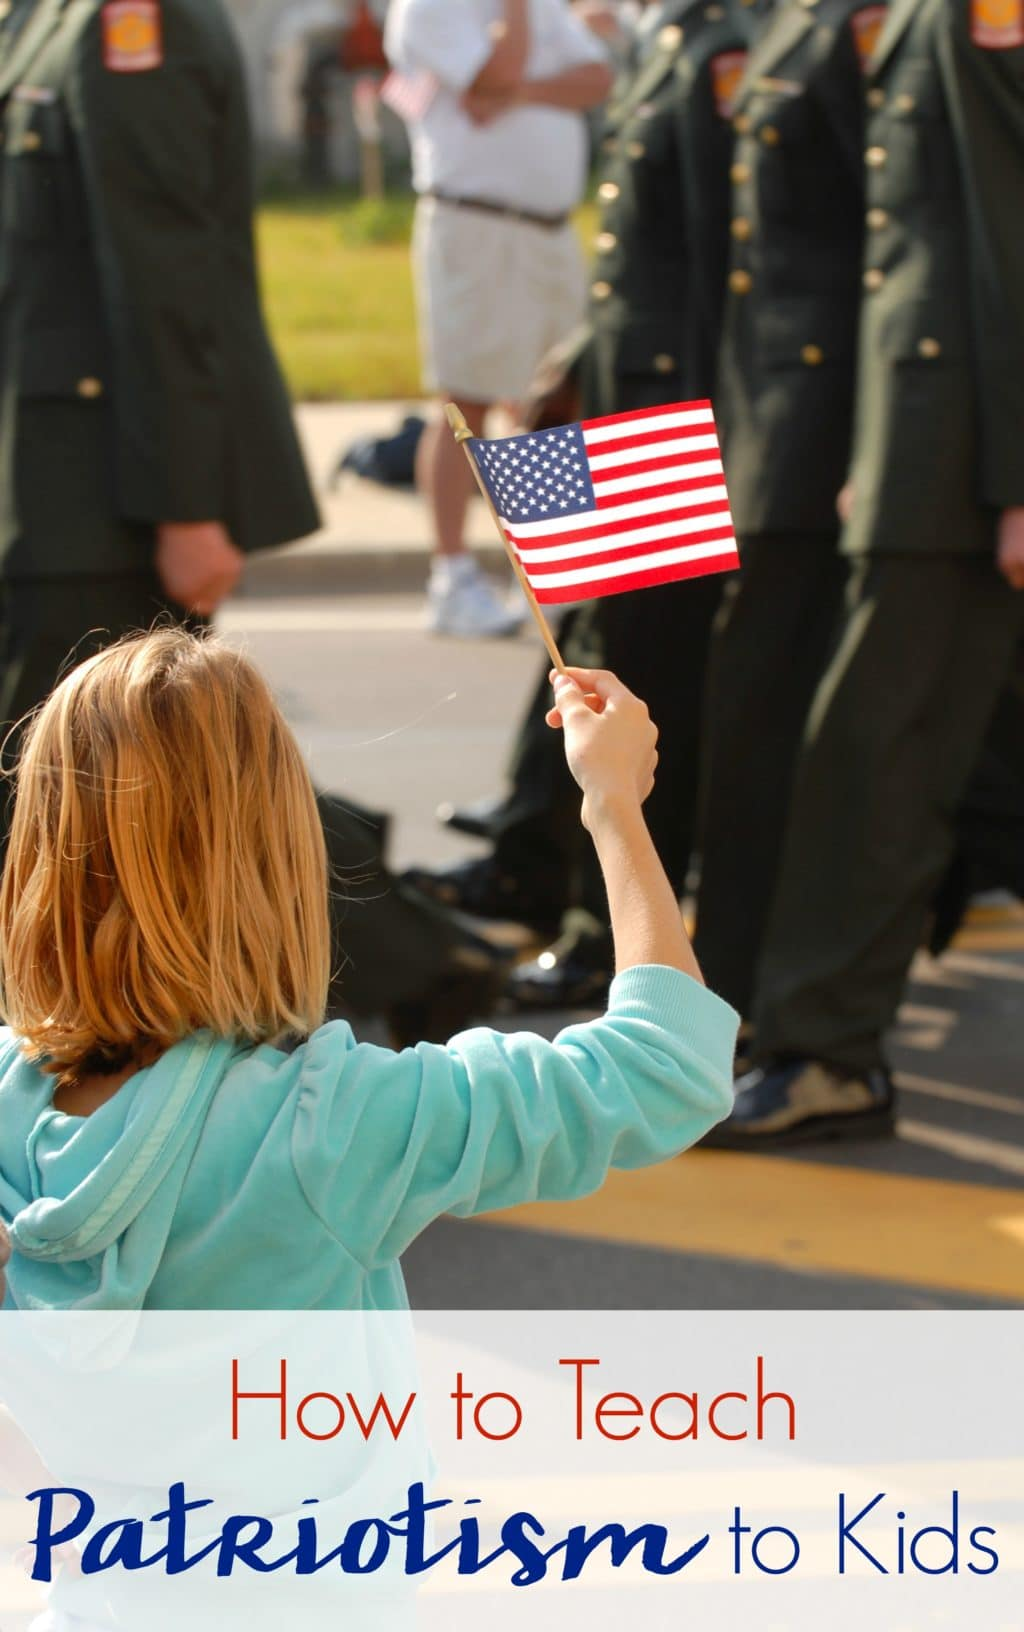 Teaching patriotism to kids goes beyond celebrating Independence Day together. This is an ongoing conversation and you can keep it going with these steps. #patriotism #patriotic #usa #teachingmoment #military #veterans #militaryappreciation #veteransday #patriotismforkids